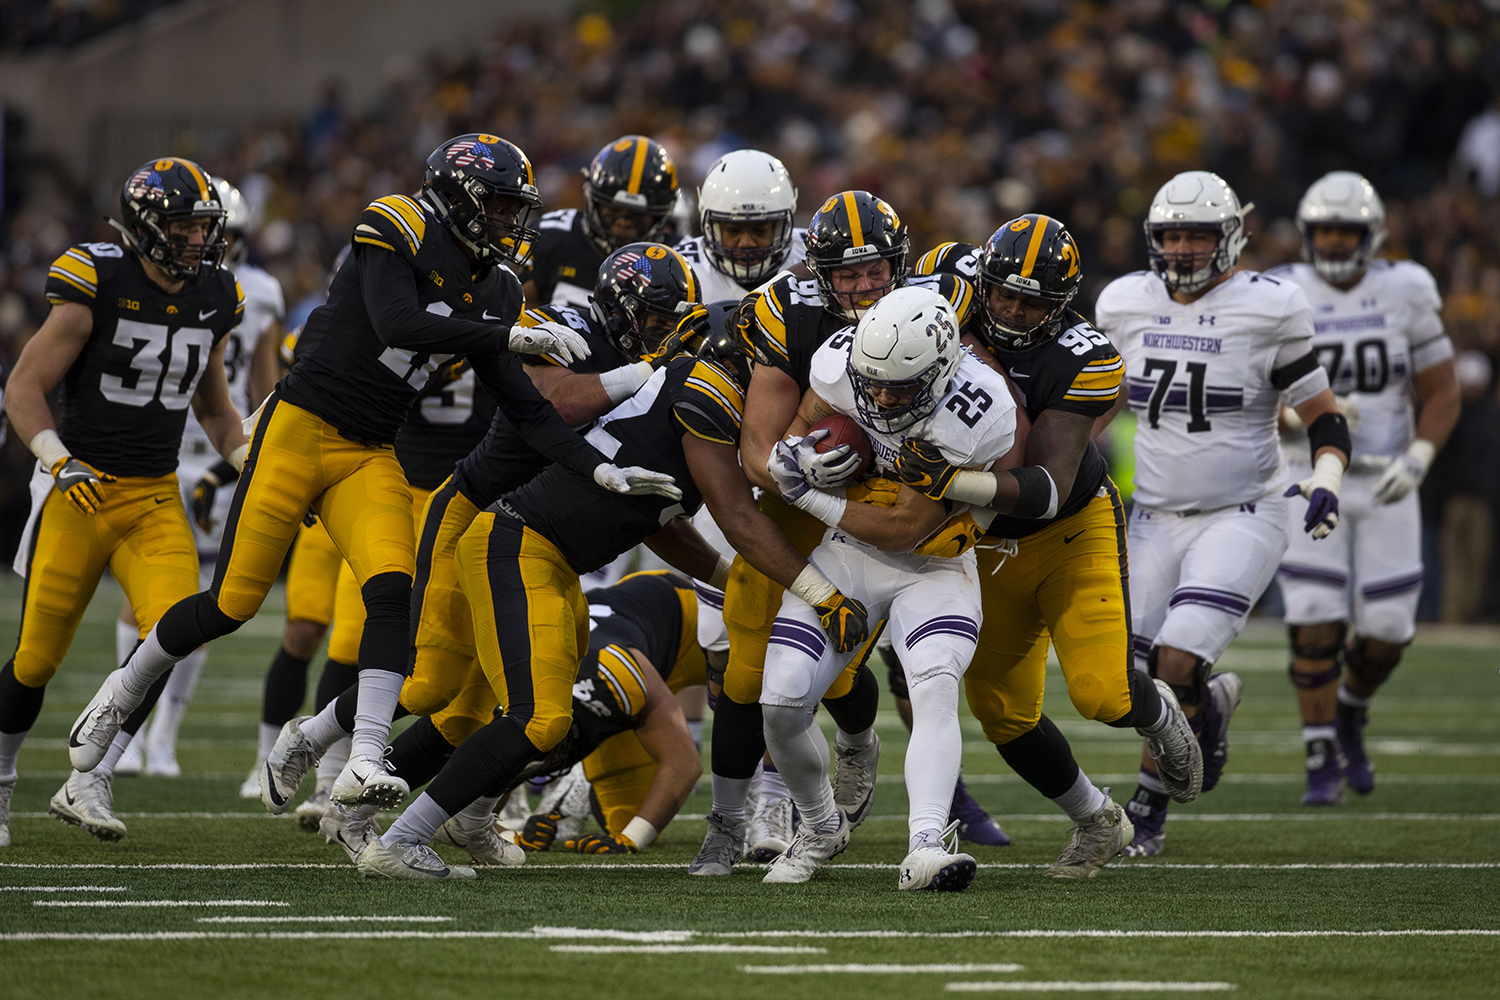 Northwestern running back Isaiah Bowser is tackled by Iowa defense during the Iowa/Northwestern football game at Kinnick Stadium on Saturday, November 10, 2018. The Wildcats defeated the Hawkeyes, 14-10. (Lily Smith/The Daily Iowan)